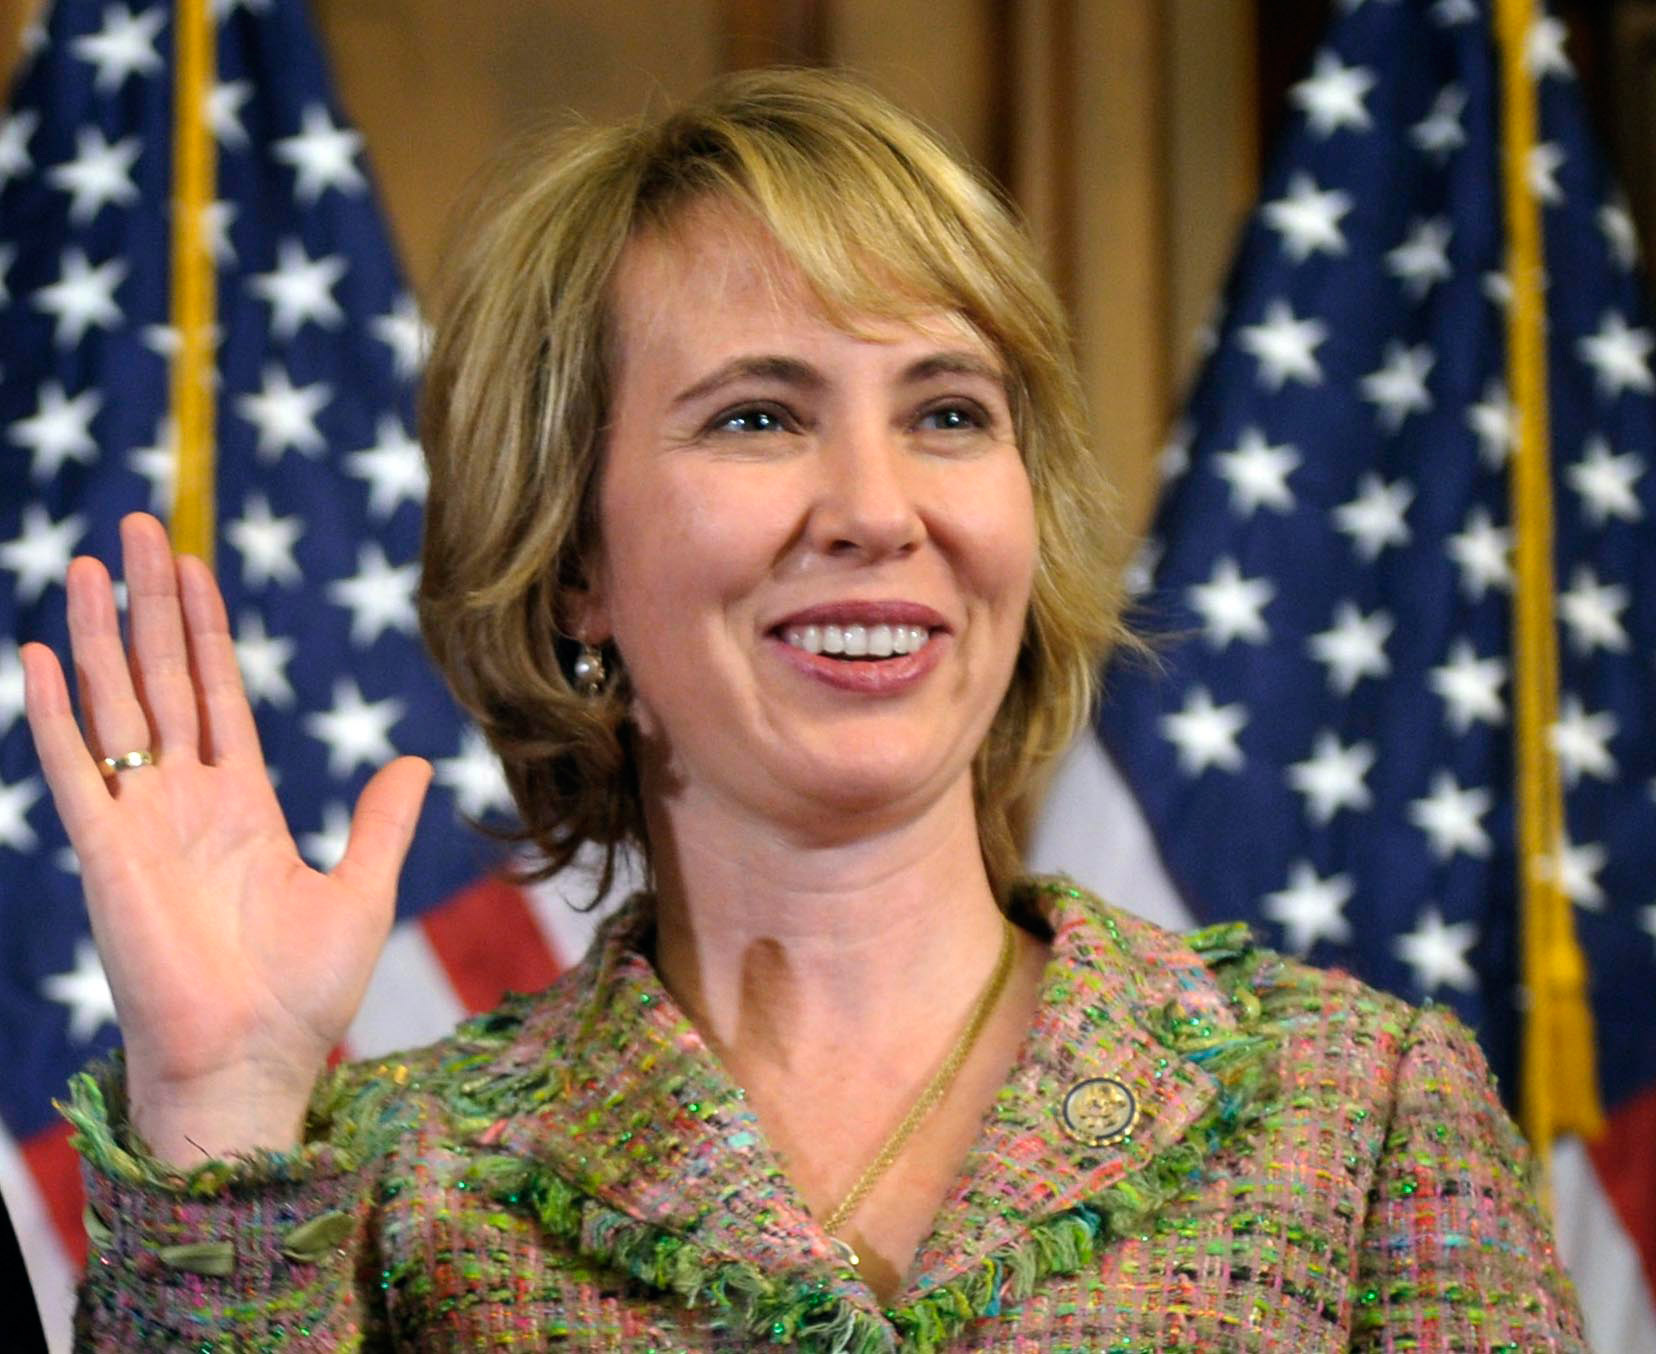 Rep. Gabrielle Giffords, D-Ariz., takes part in a reenactment of her swearing-in, on Capitol Hill in Washington, Jan. 5, 2011.